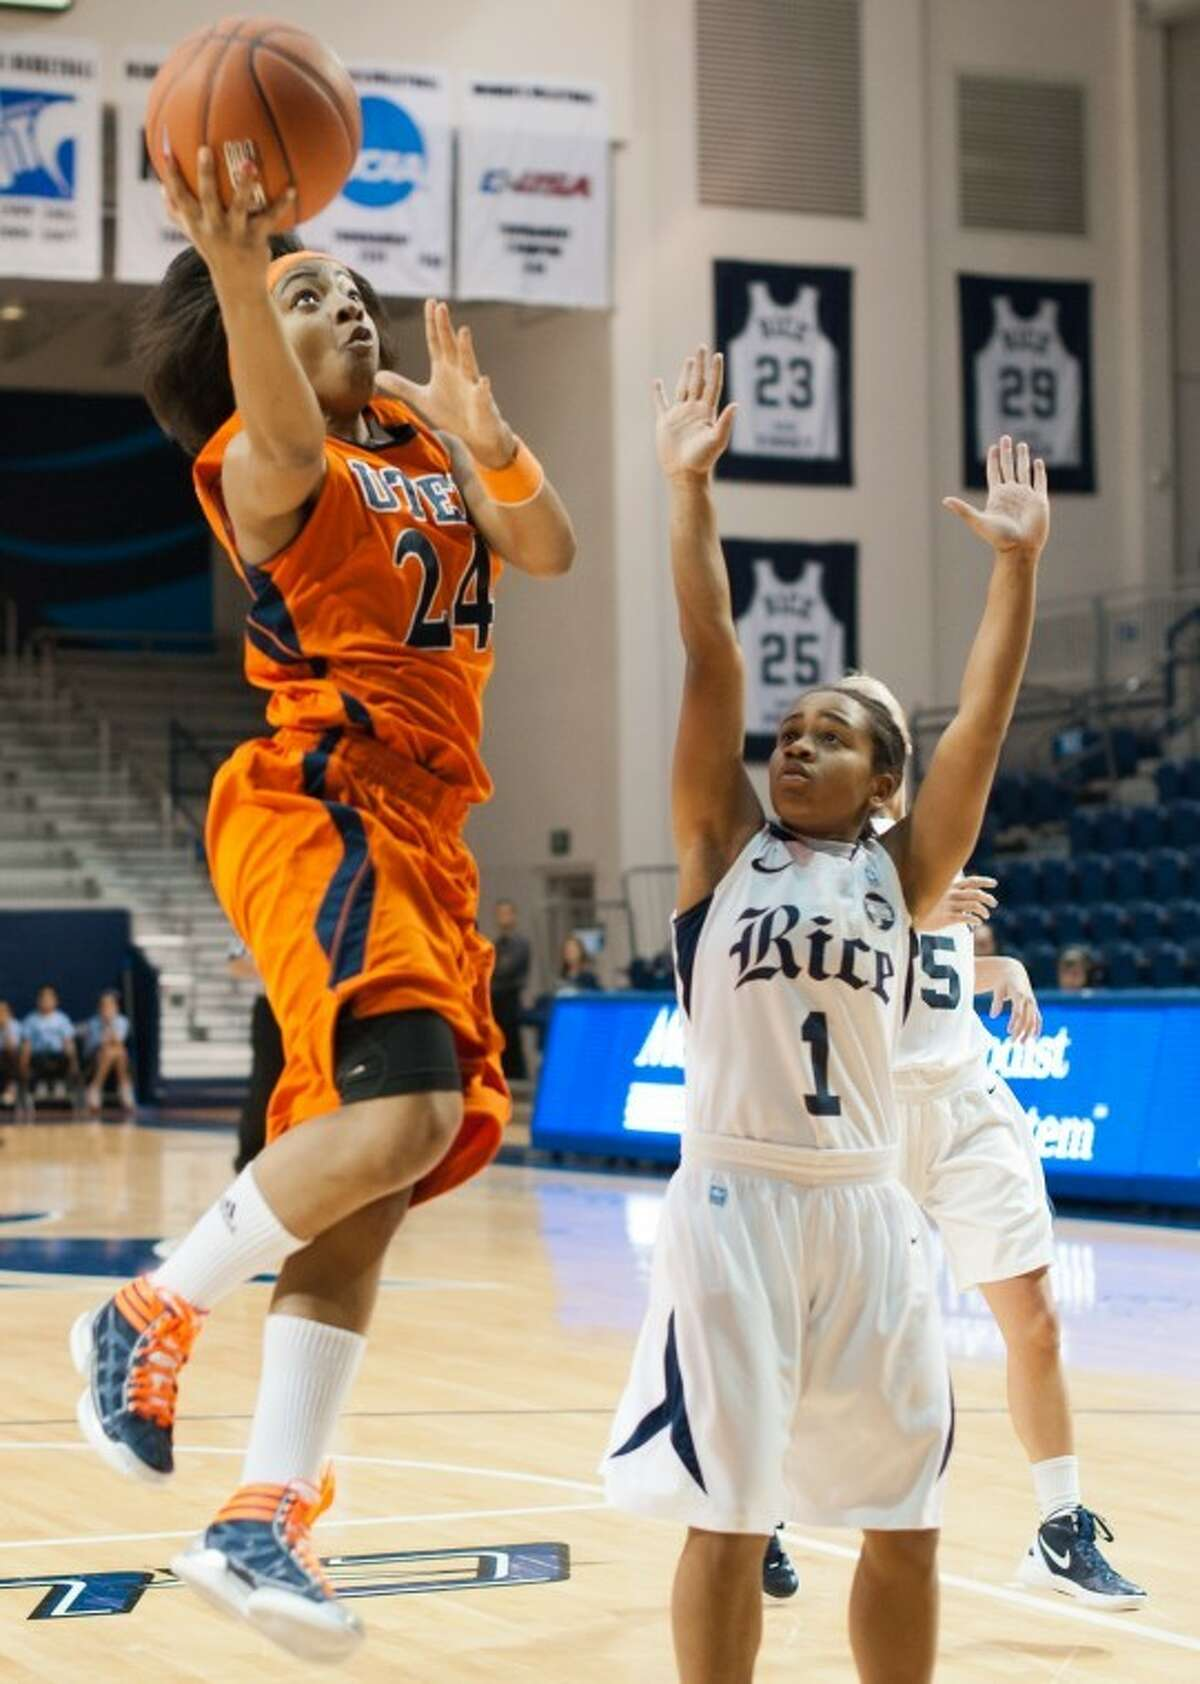 UTEP's Jenzel Nash (Worthing HS) sails in a layup over the head of Rice's D'Frantz Smart in the first. The Miners of UTEP came to Rice to take on the Owls in a rare Sunday morning nationally-televised game the day of the Super Bowl. UTEP broke a late tie to pull ahead and win it 45-41.